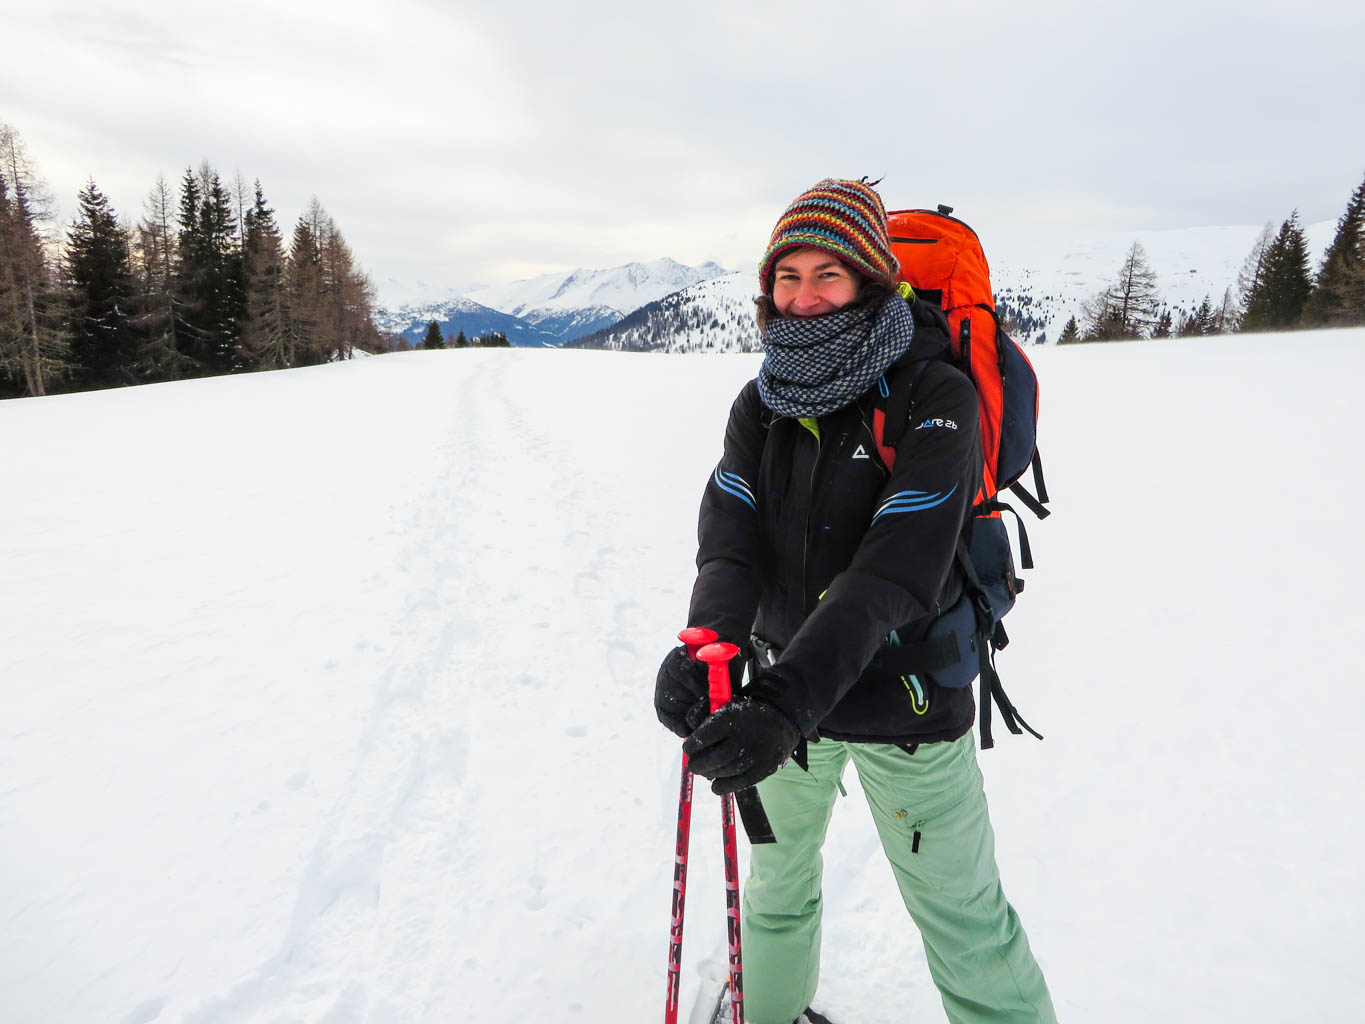 Snowshoeing in the Lungau-31035.JPG - © European Wilderness Society CC BY-NC-ND 4.0